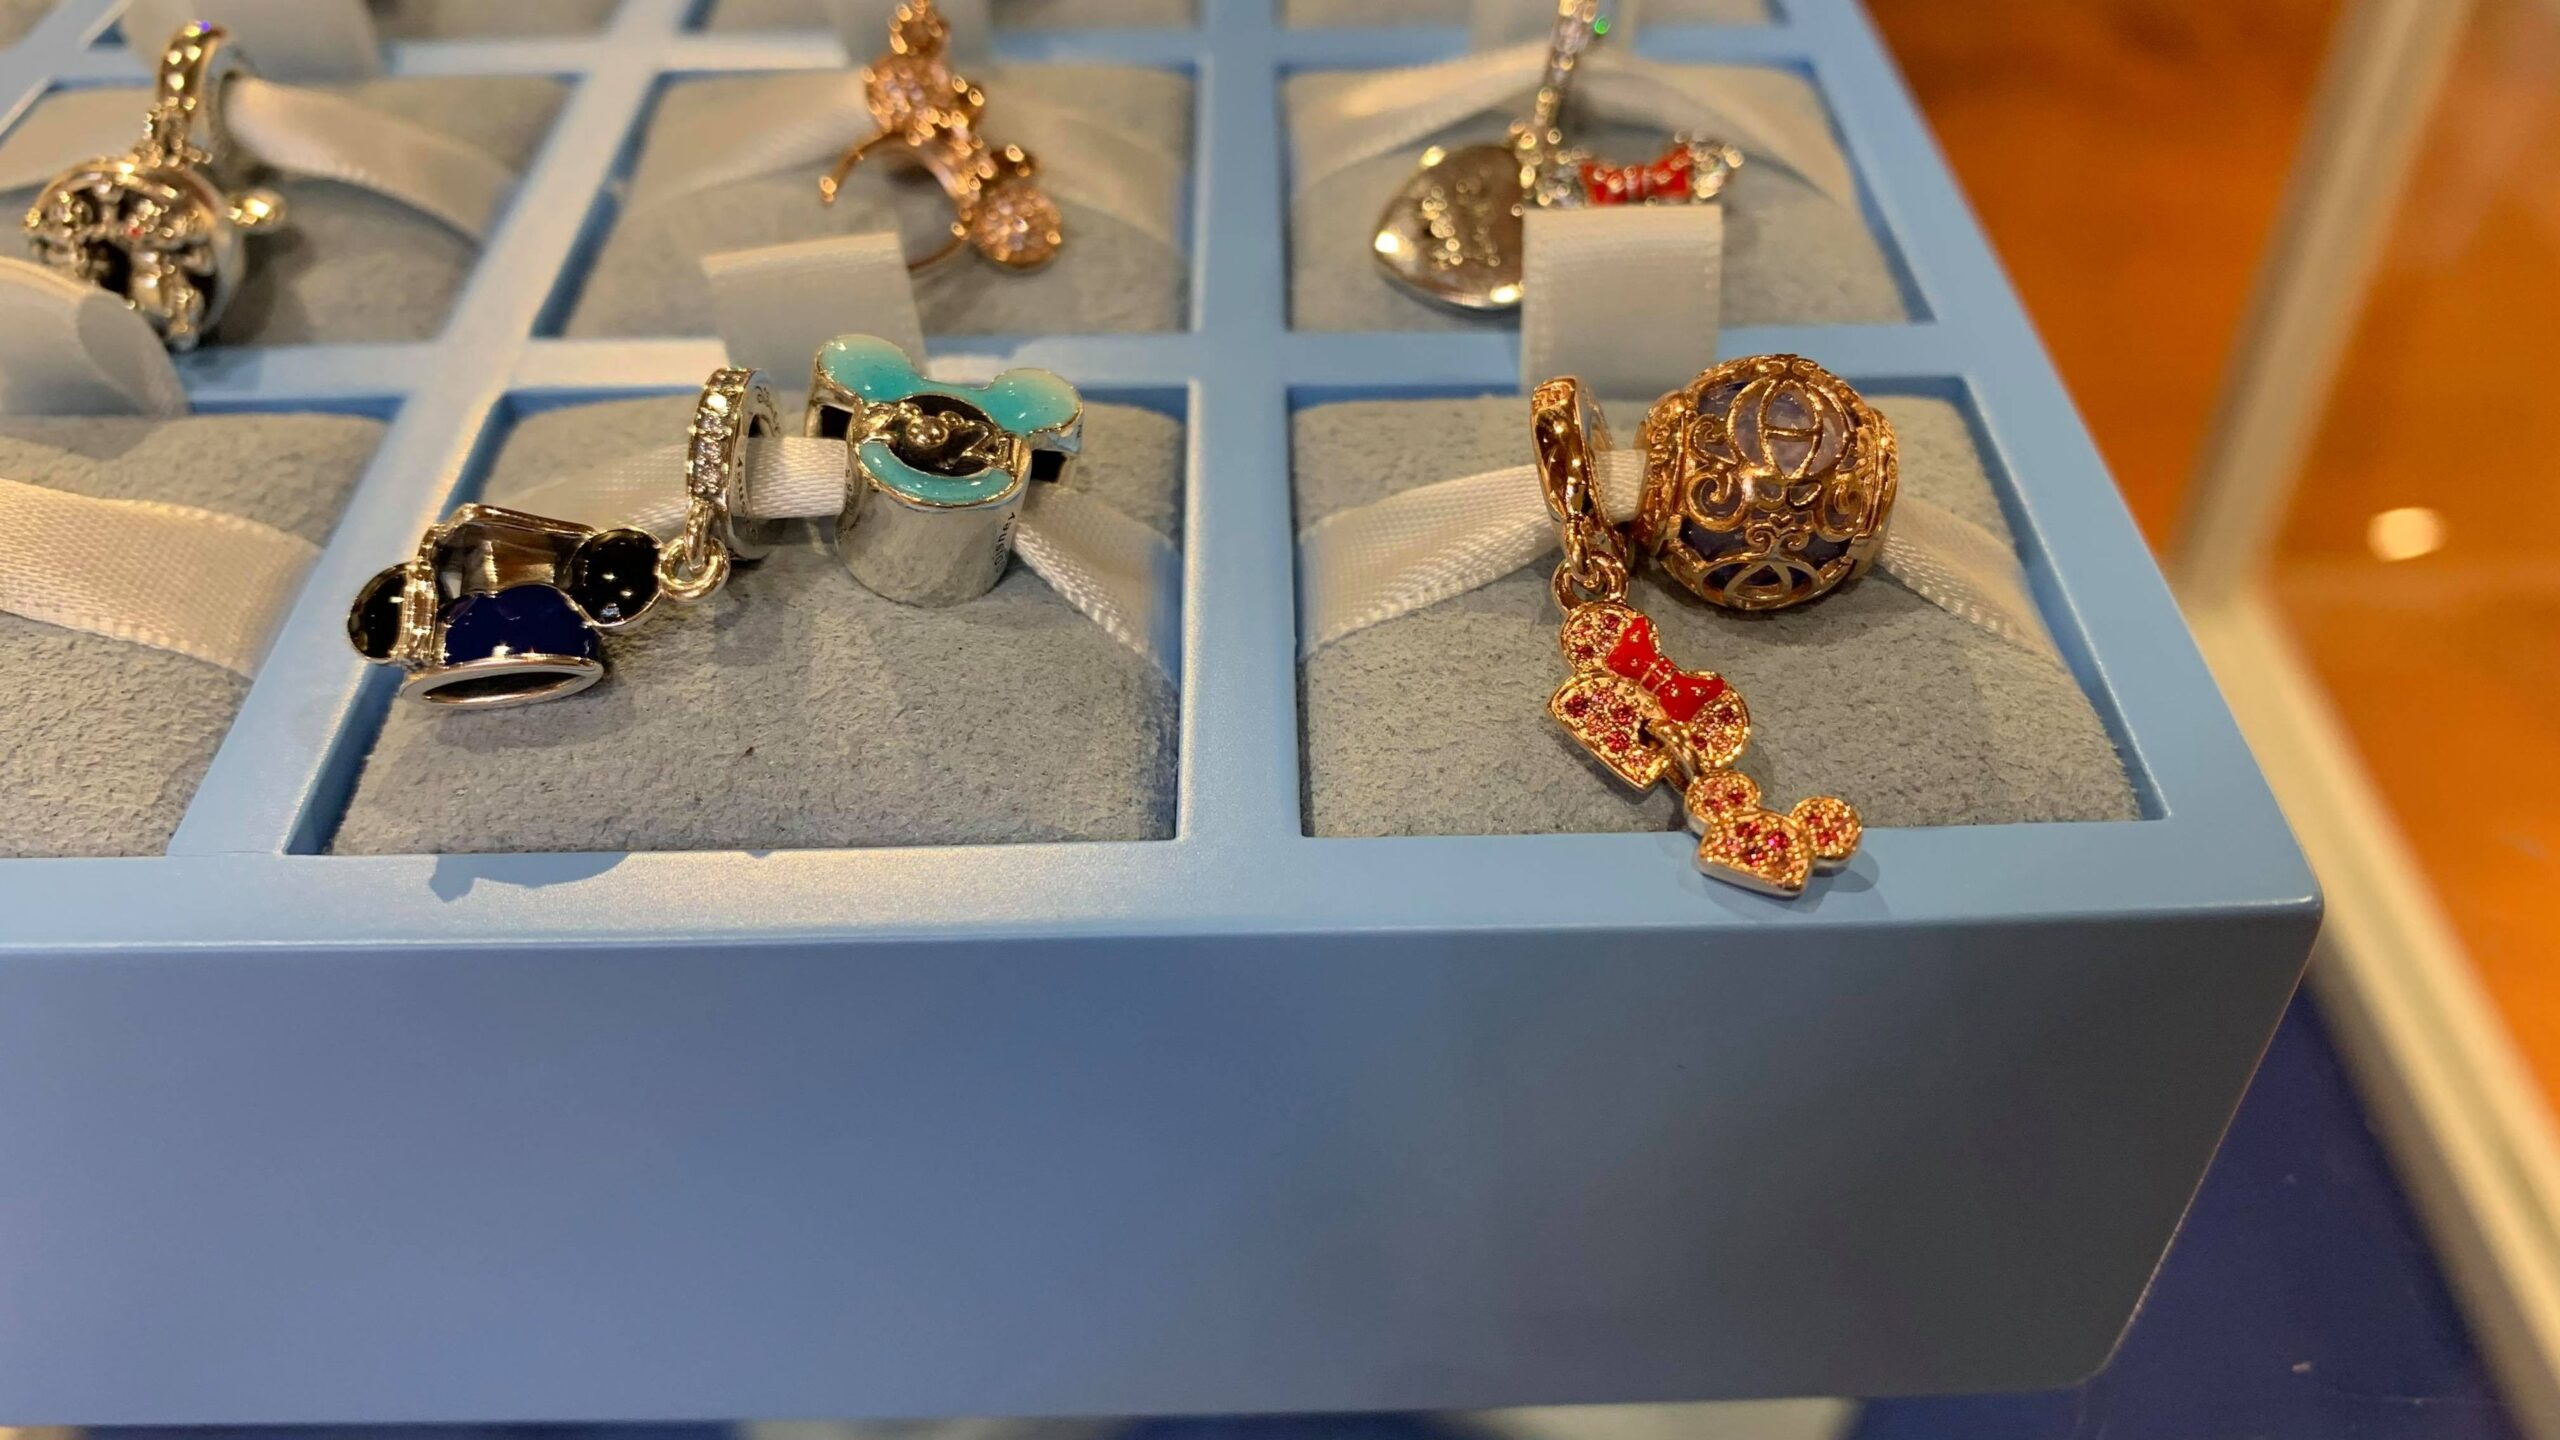 New Disney Parks Pandora Charms For Grads And Moms | Chip and Company